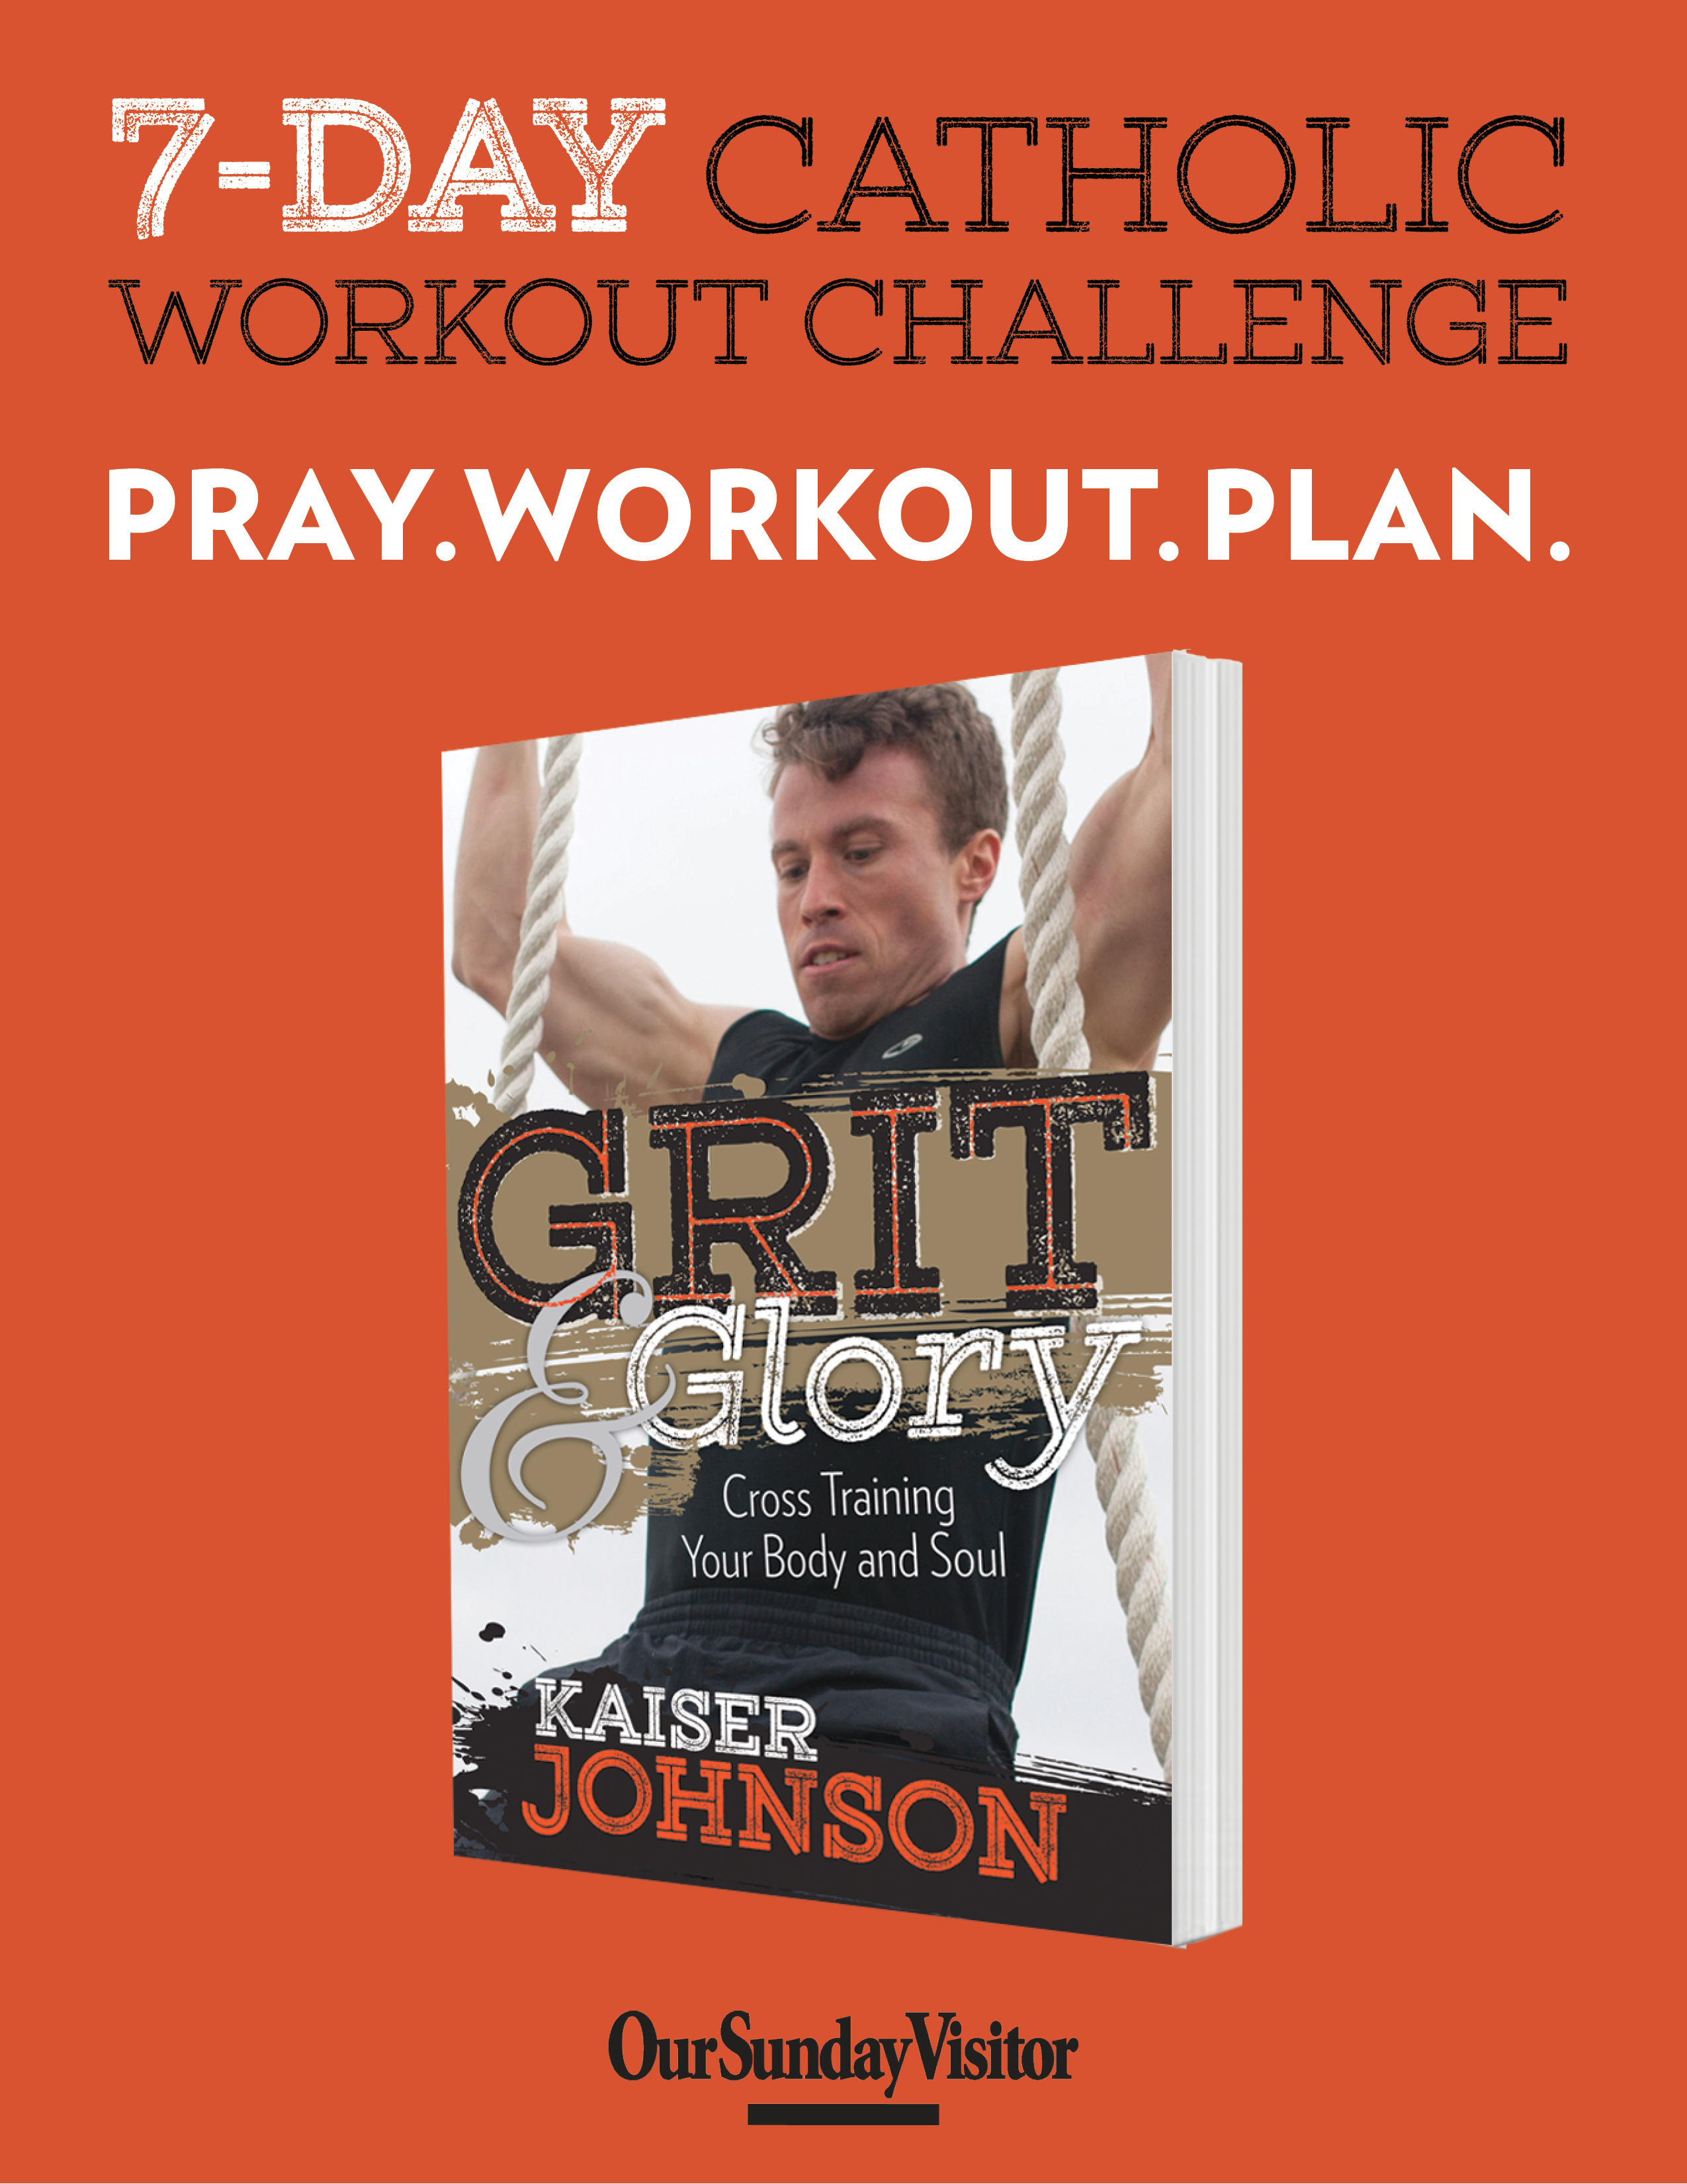 7-Day Catholic Workout Challenge